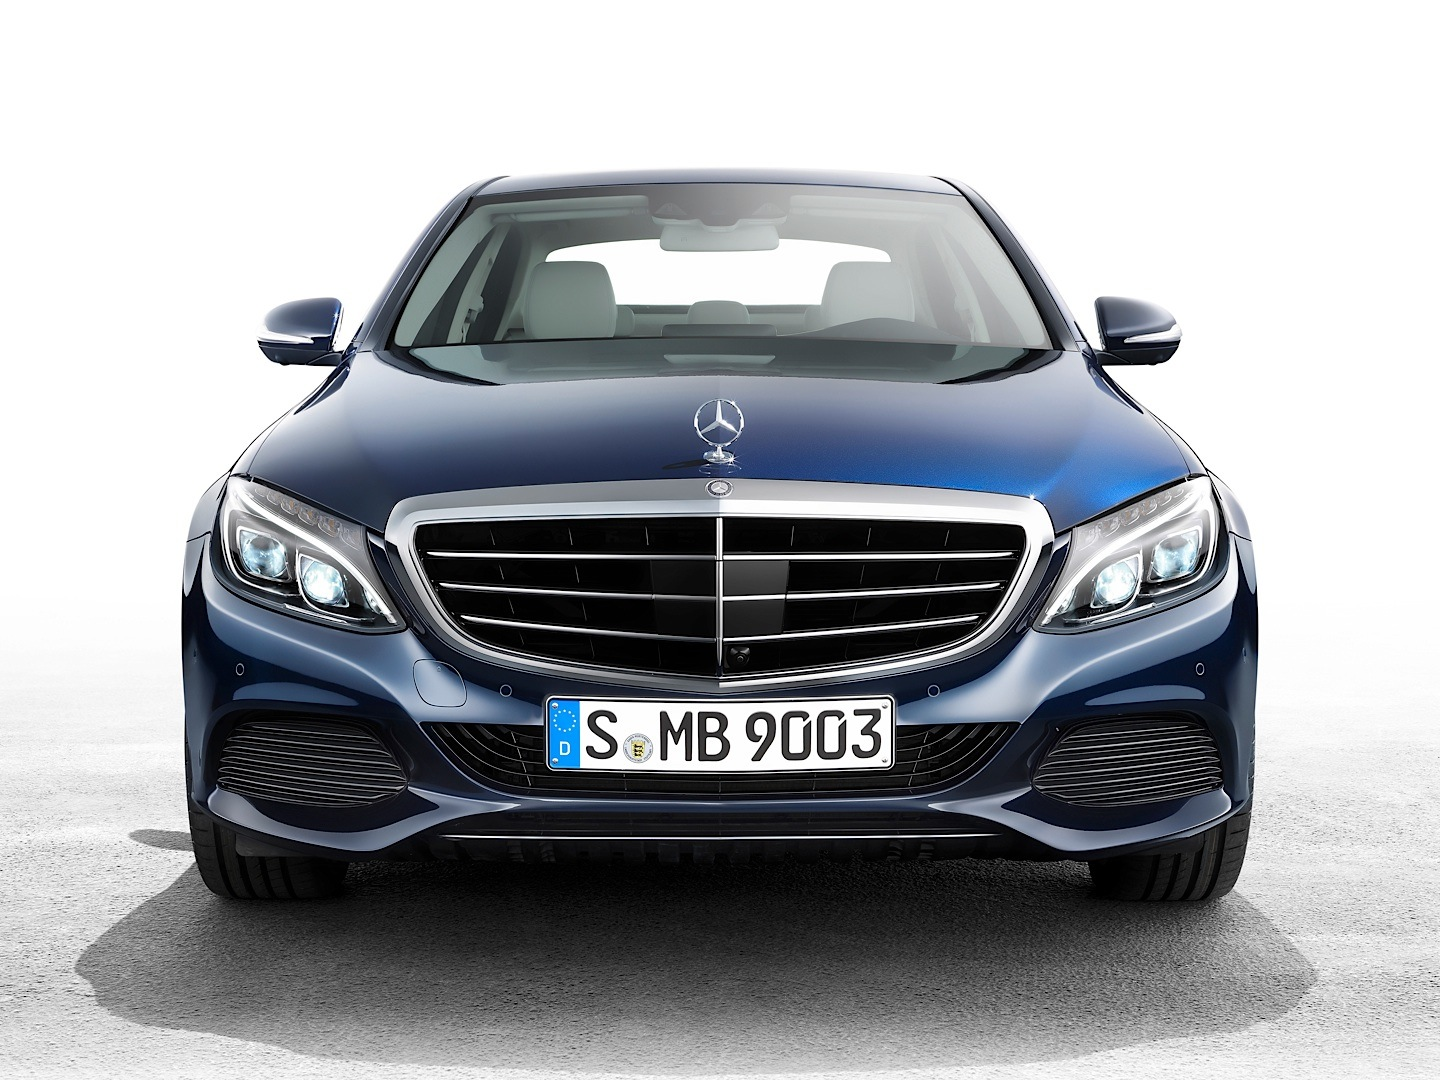 New C Class The 2015 Mercedes Benz C Class Is Now Official Pakwheels